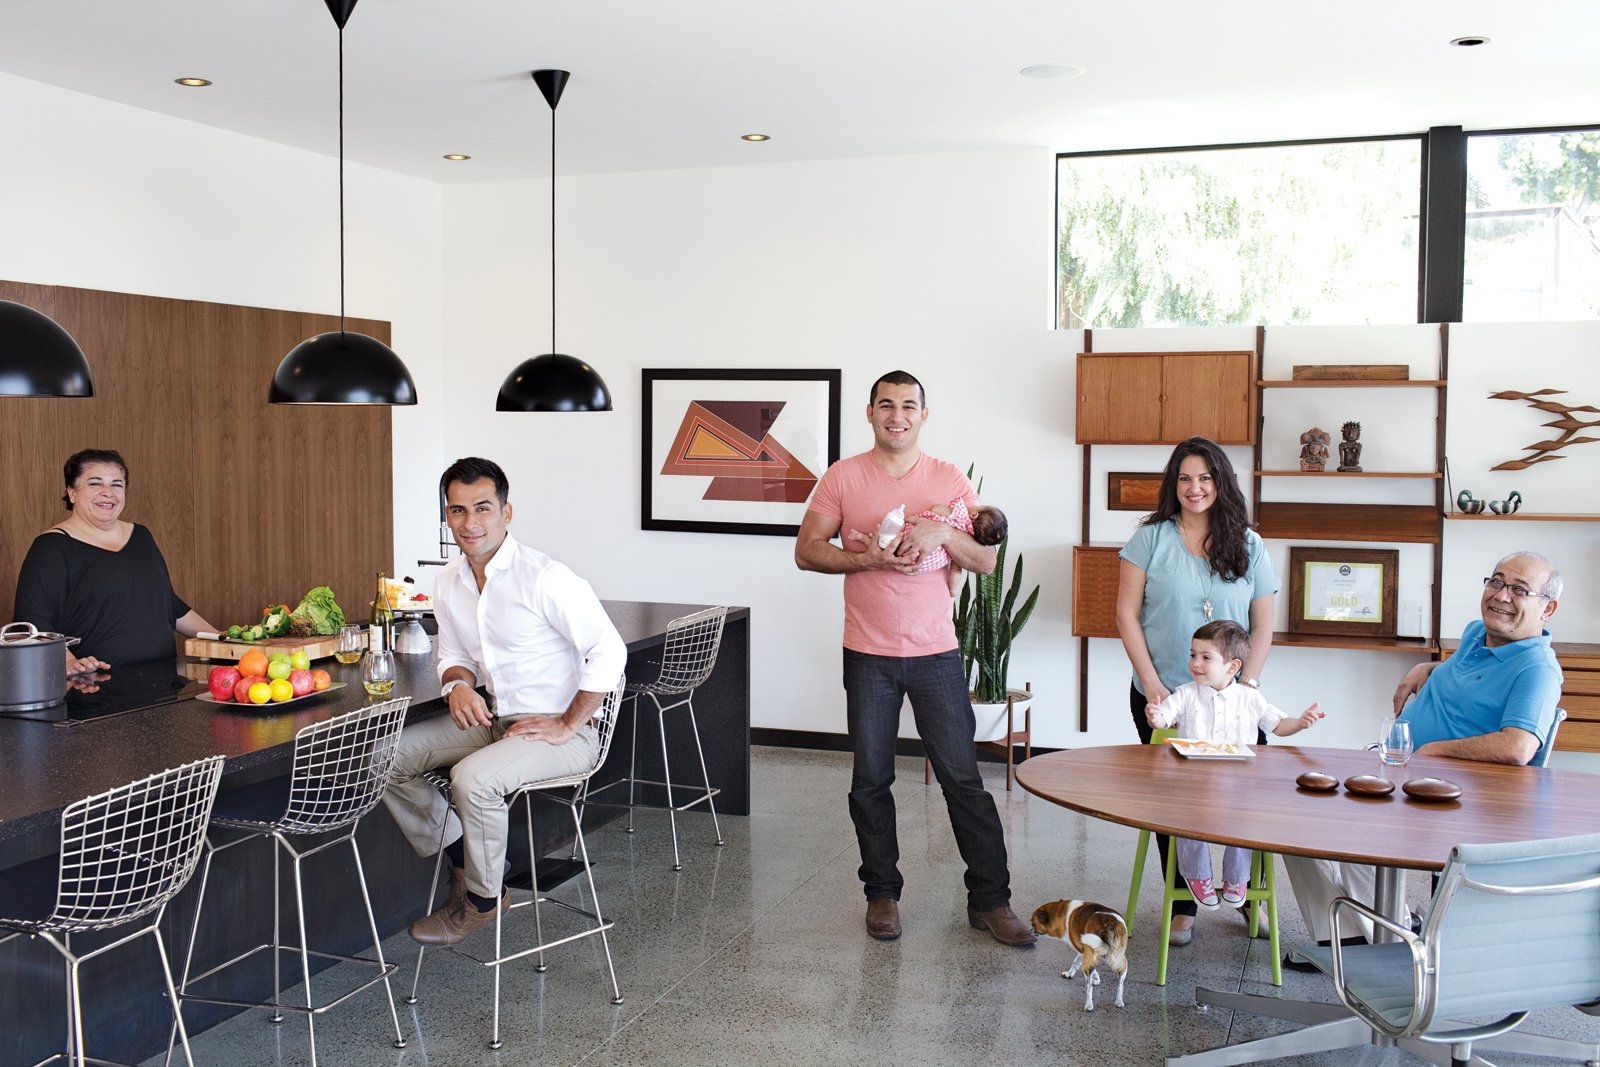 Dining, Concrete, Table, Recessed, Chair, Bar, Pendant, Stools, and Shelves Parents Mitra and Sasan Nakhshab join sons Nima and Soheil (with daughter, Sofia) and Soheil's girlfriend, Susana Mora (with son, Shayan), on the main floor.  Best Dining Shelves Table Bar Pendant Photos from The First LEED Gold-Certified Family Home in San Diego